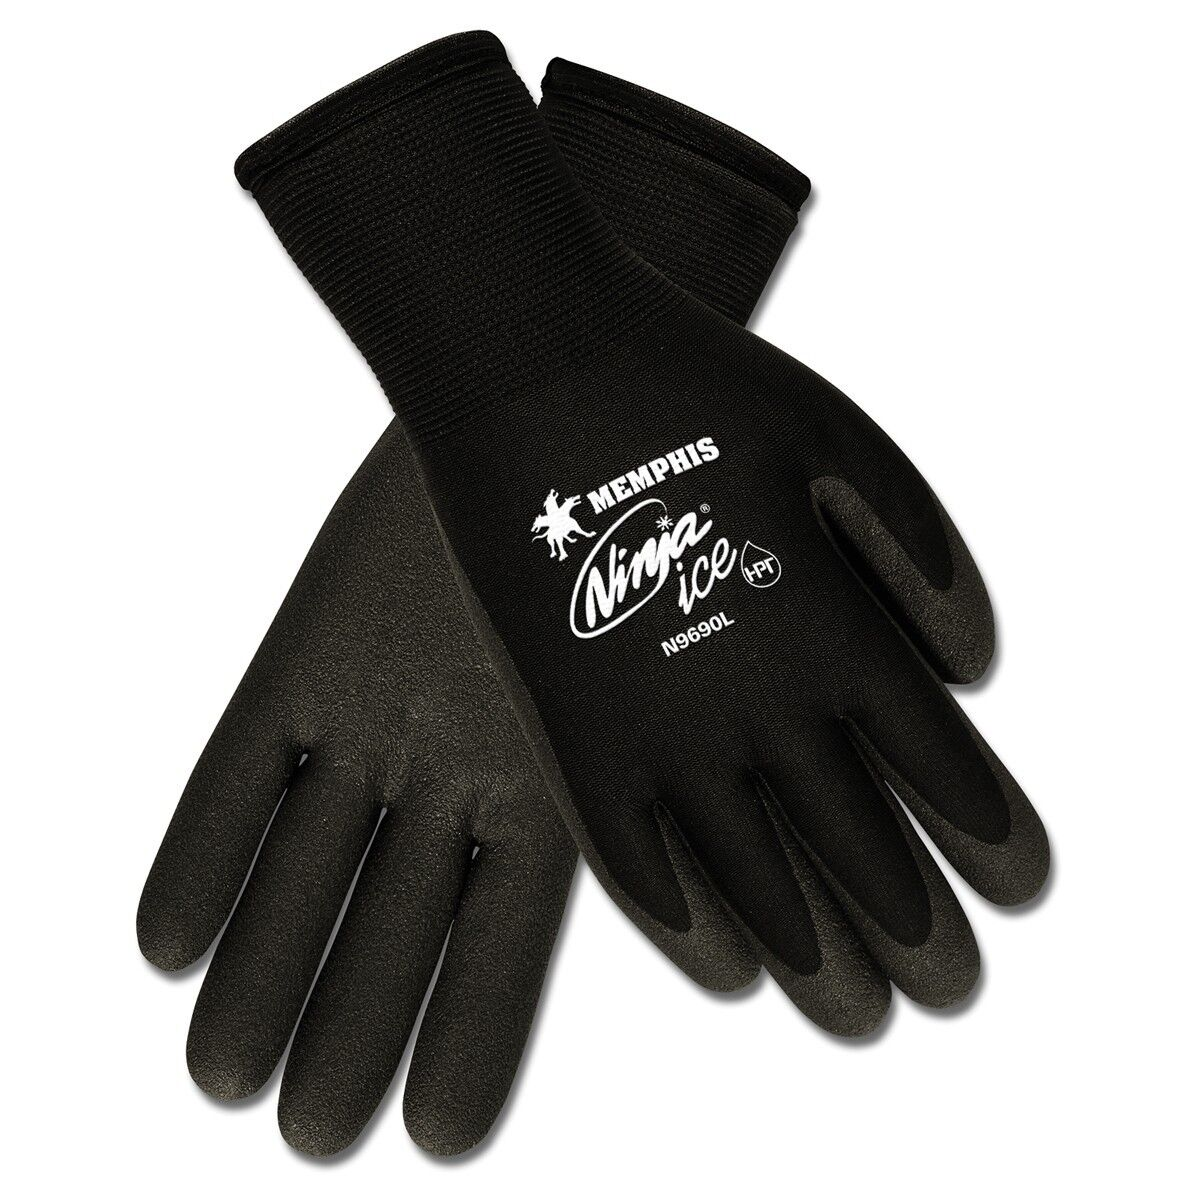 Memphis N9690 Ninja Ice Insulated Cold Weather Gloves Size S-2XL *Free US Ship* Business & Industrial